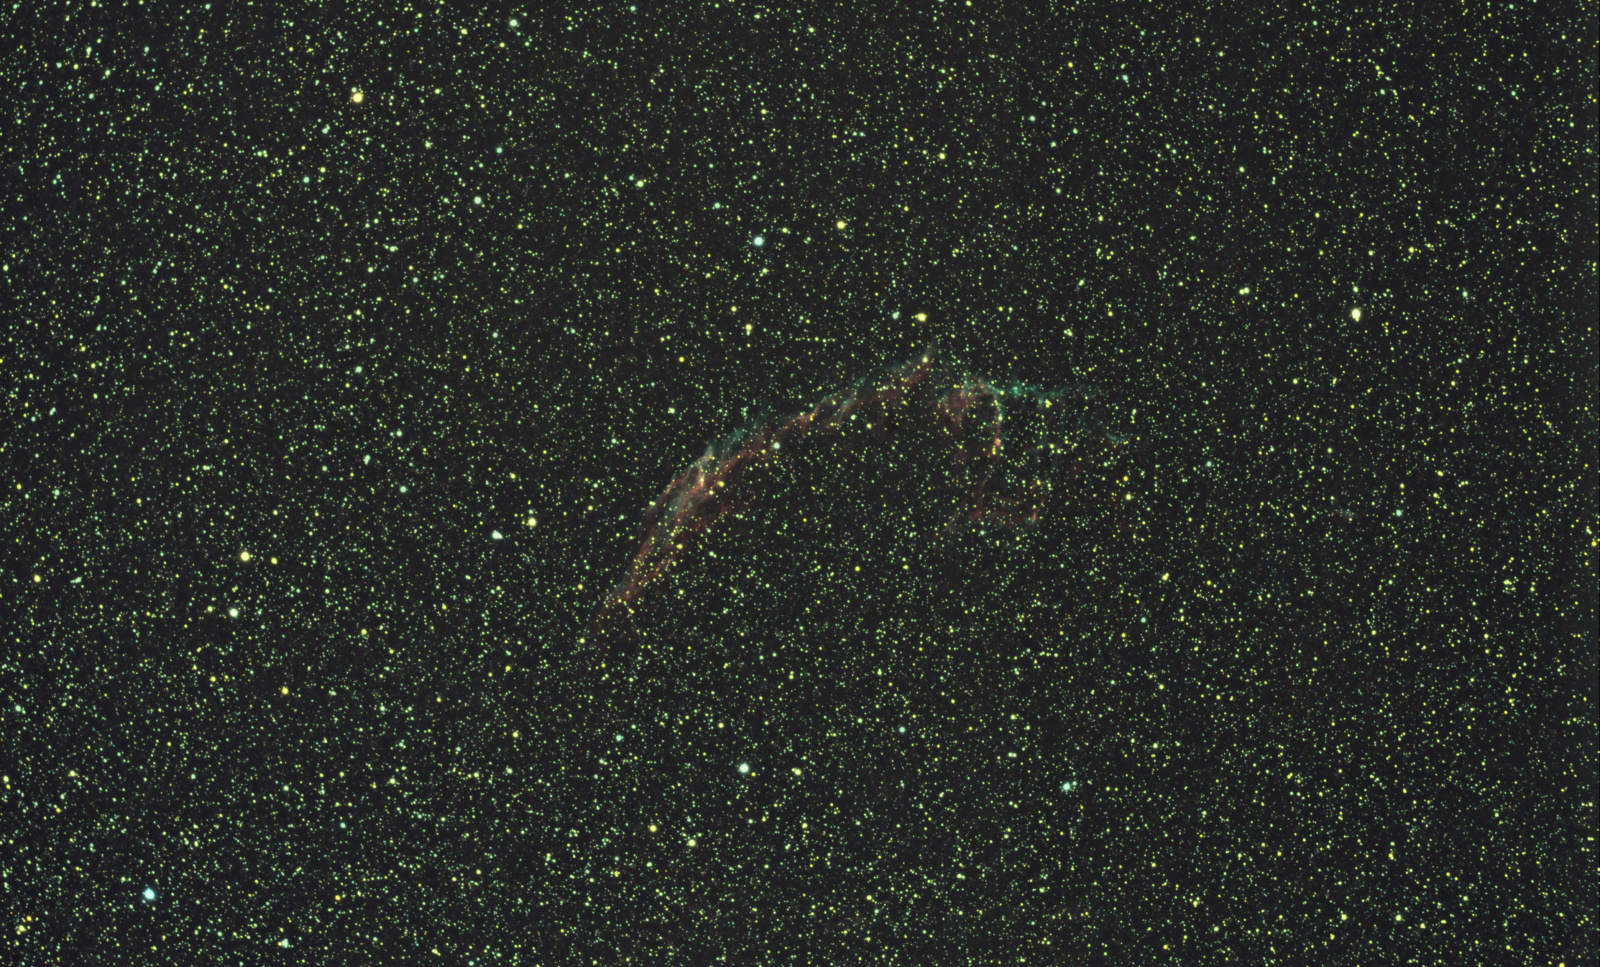 1536446525_ngc6992-before-meridian2020-08-16-17x600L--EQMod-Mount-Canon-EOS-1100D--_stacked.thumb.jpg.34986604b61982ef14af872ae7bbdb32.jpg